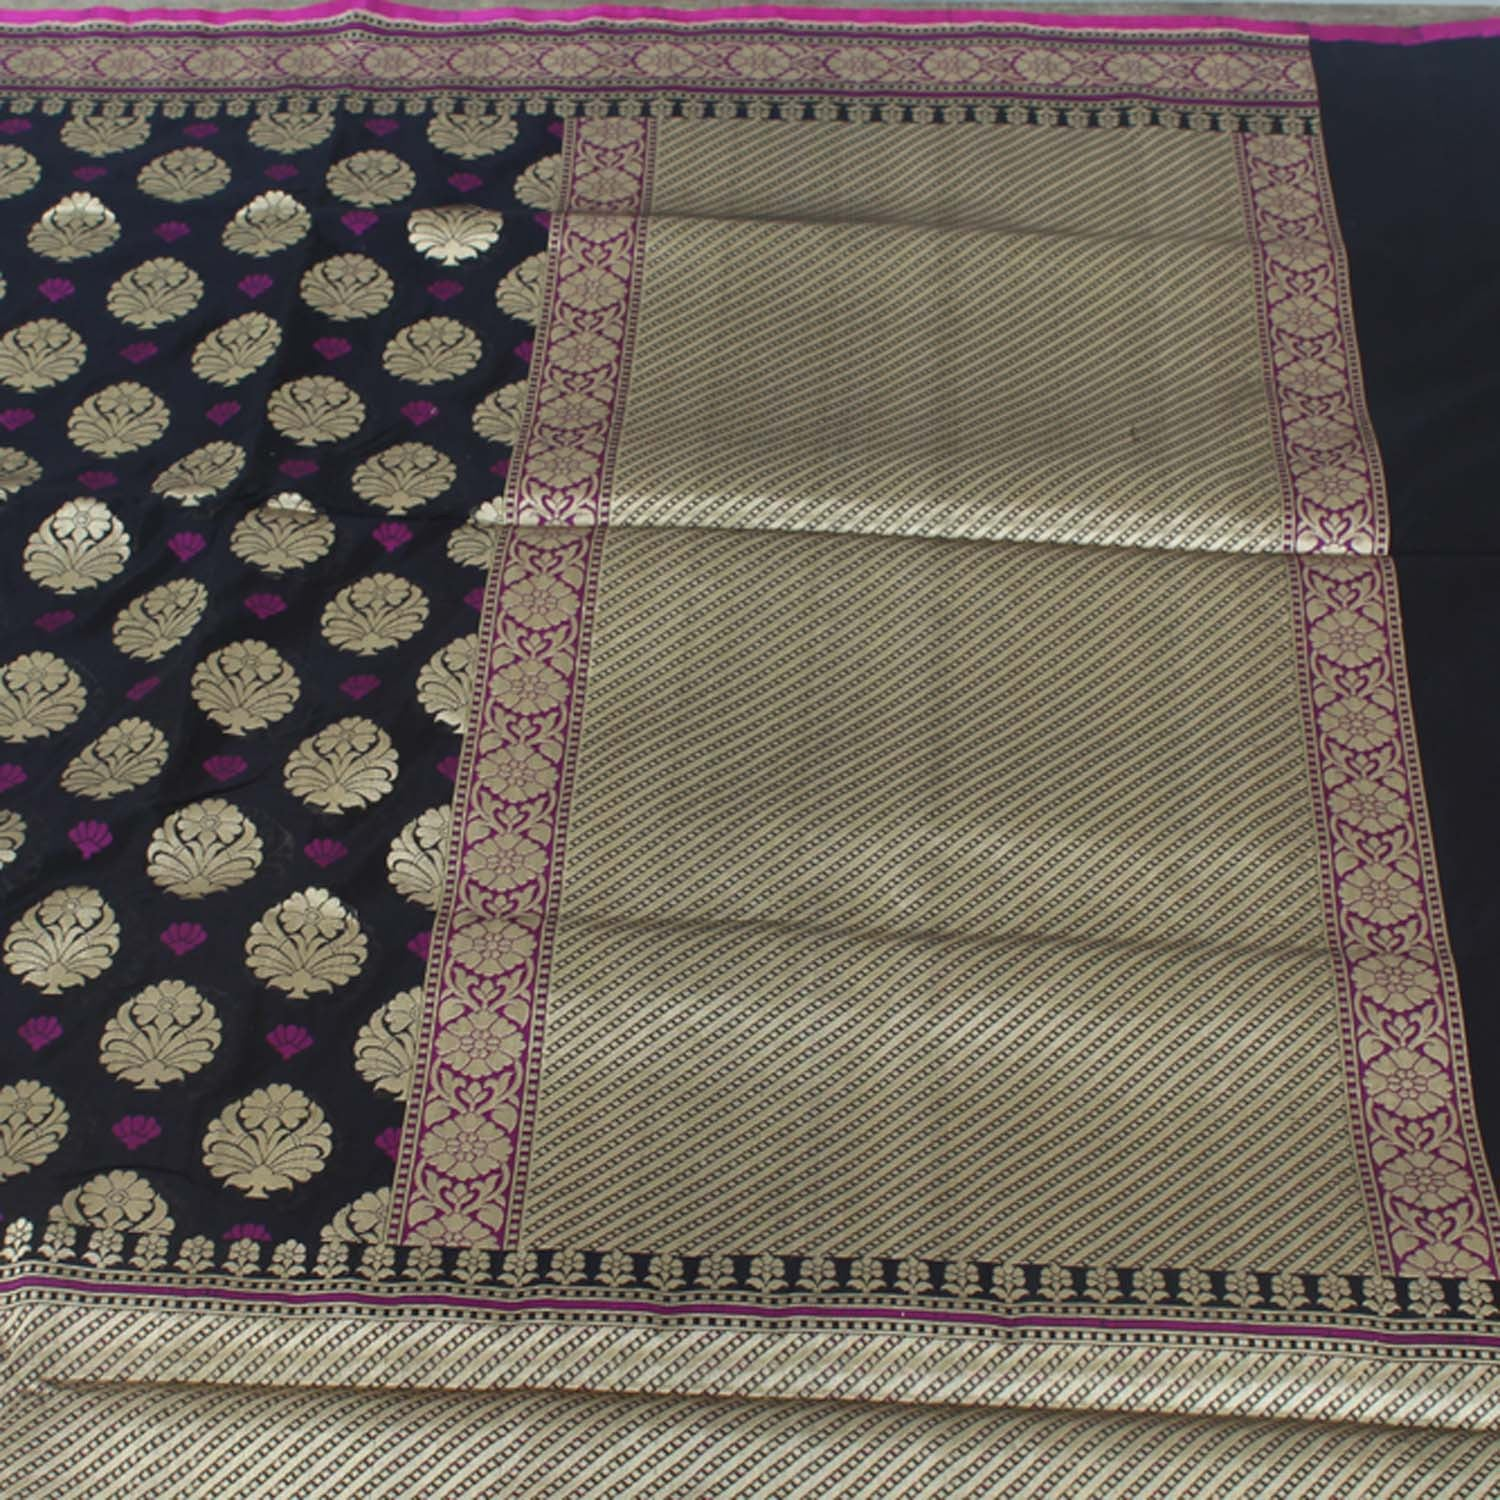 Black Pure Silk Georgette Banarasi Handloom Saree - Tilfi - 3